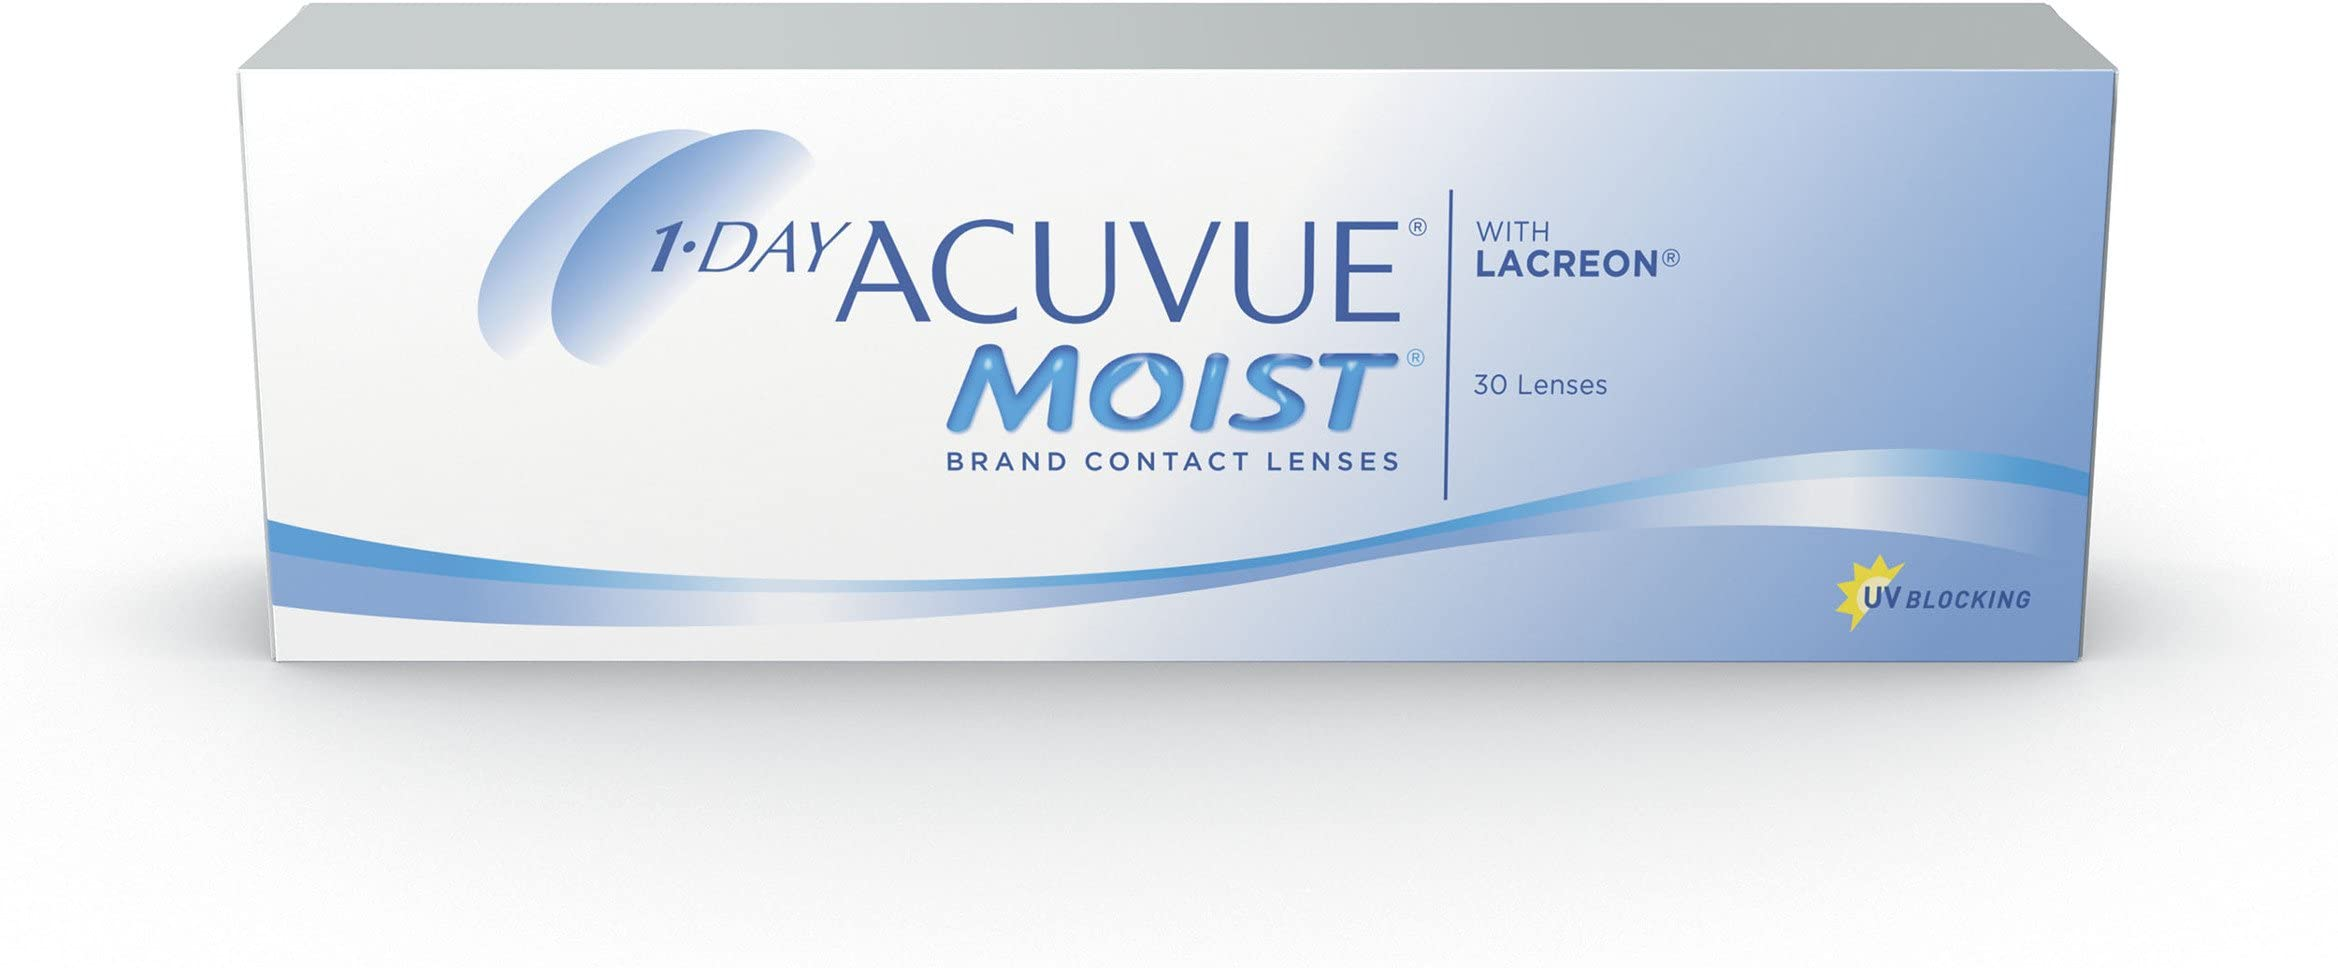 1-Day Acuvue Moist Contact Lens - 30 Pack, Clear, -7